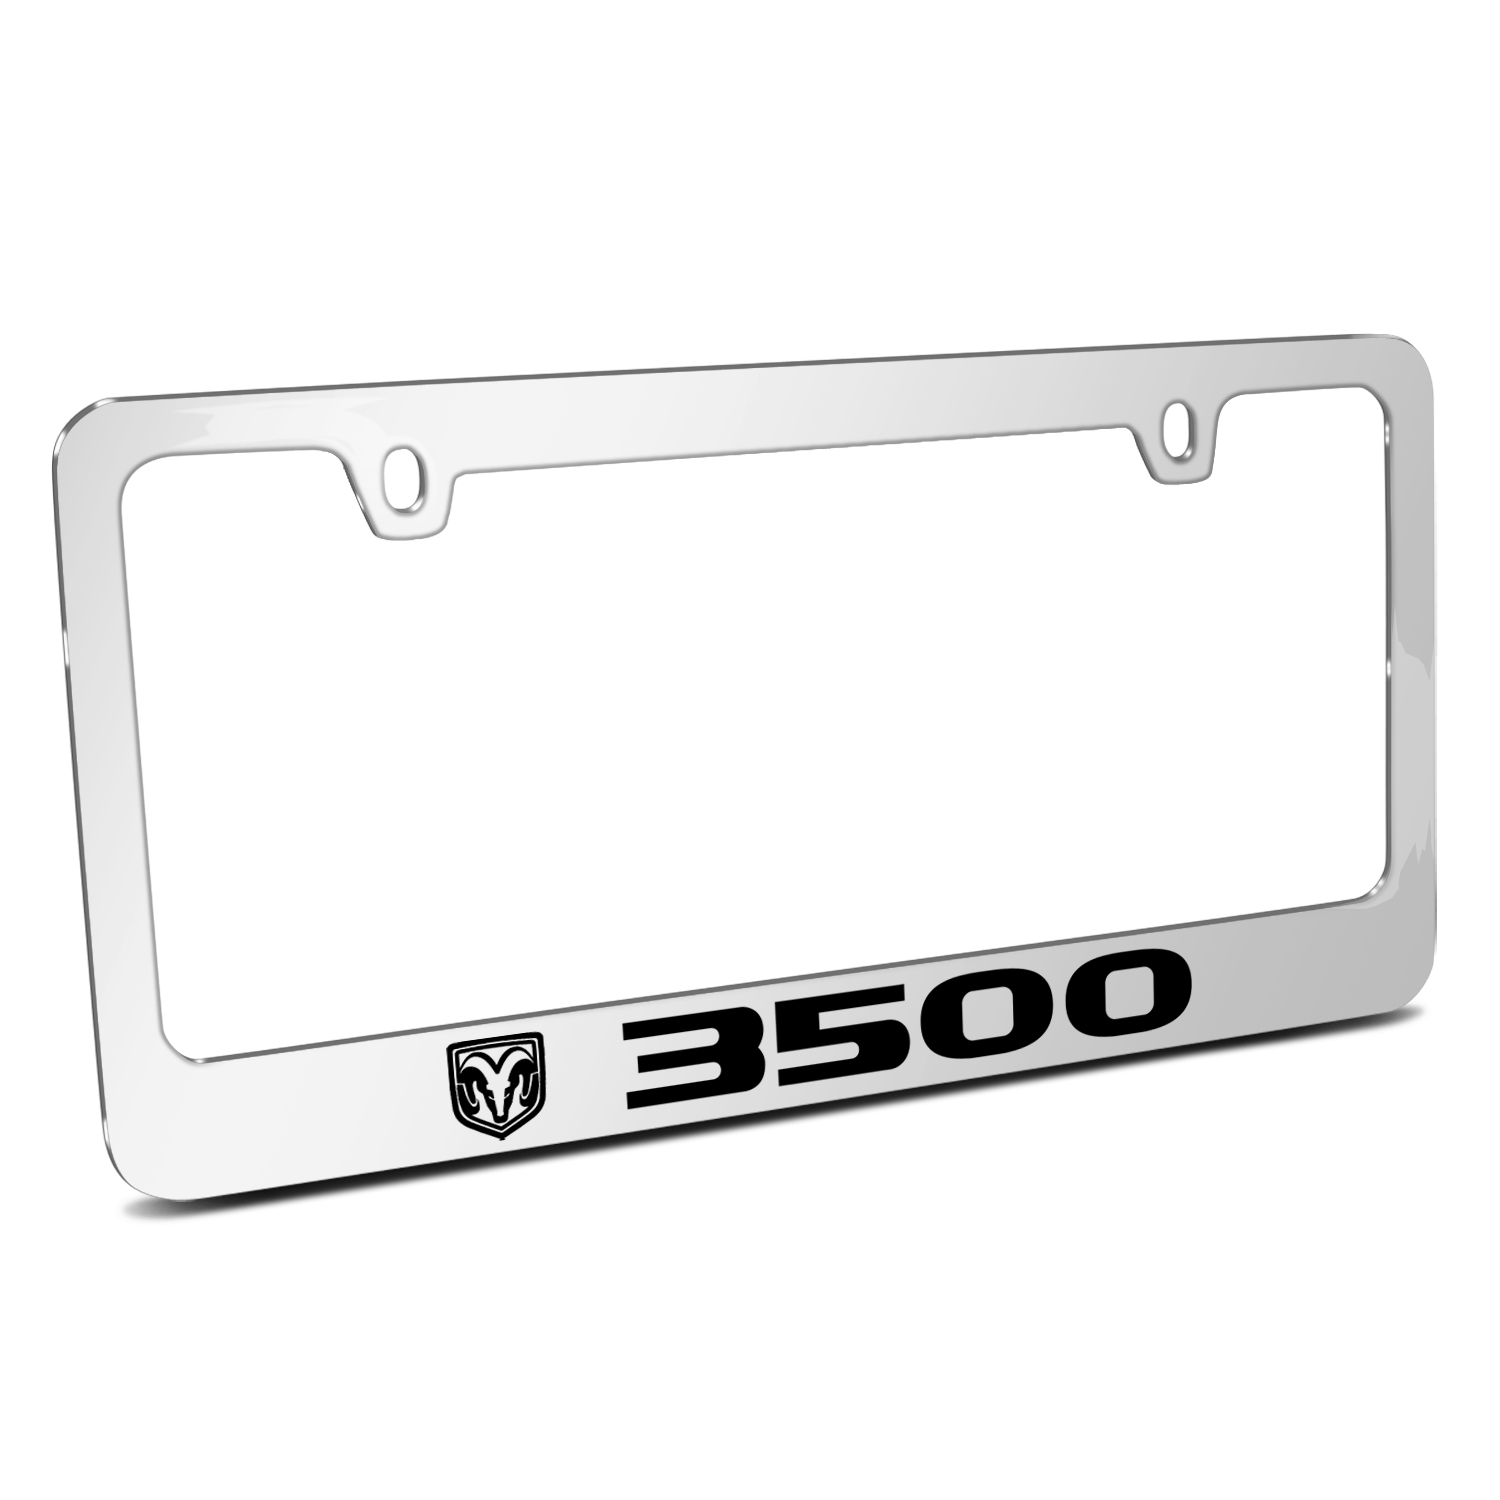 RAM 3500 Logo Mirror Chrome Metal License Plate Frame